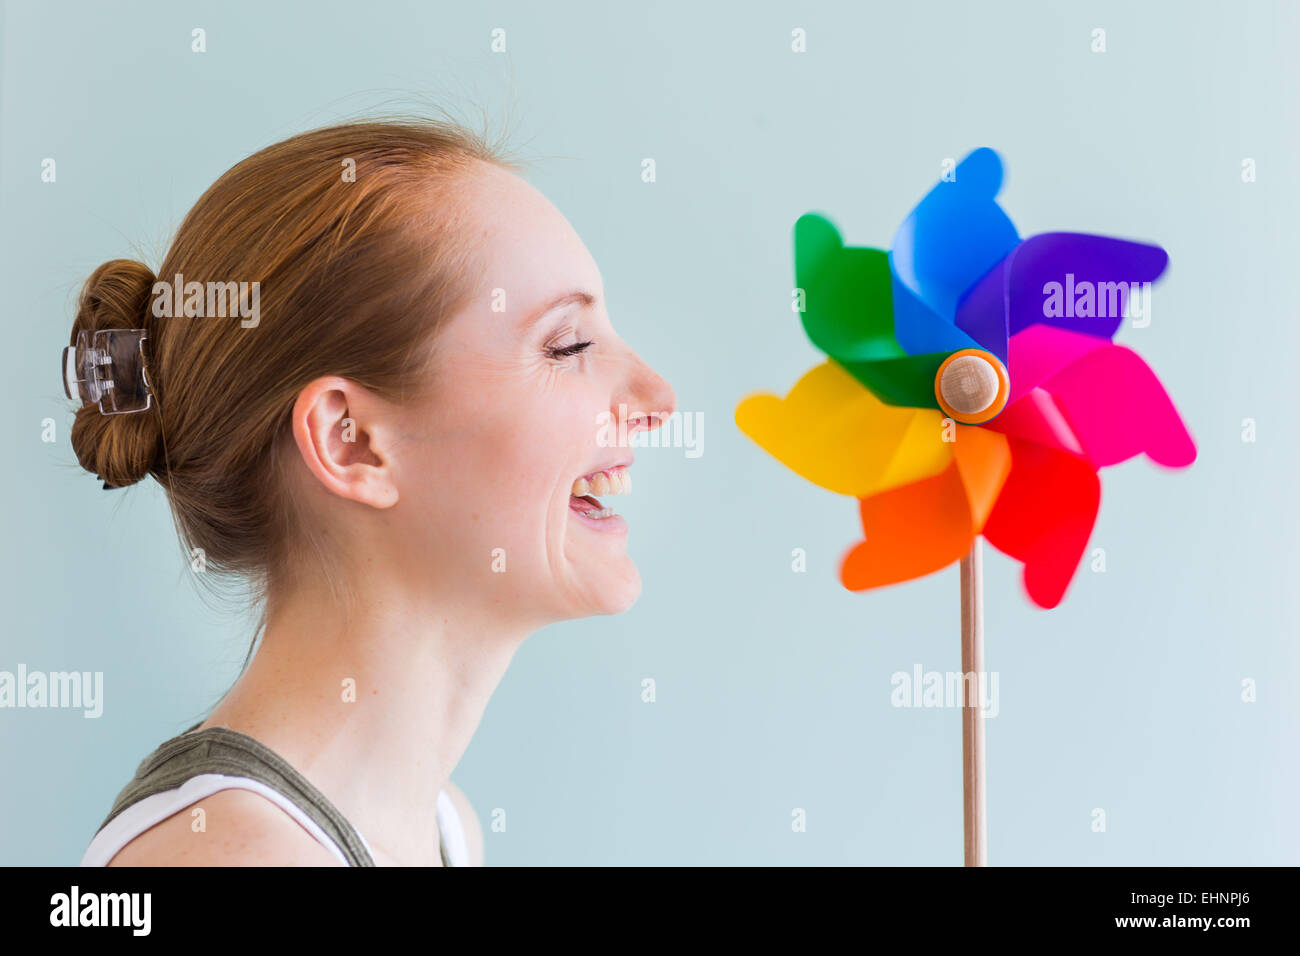 Conceptual image of breath. - Stock Image